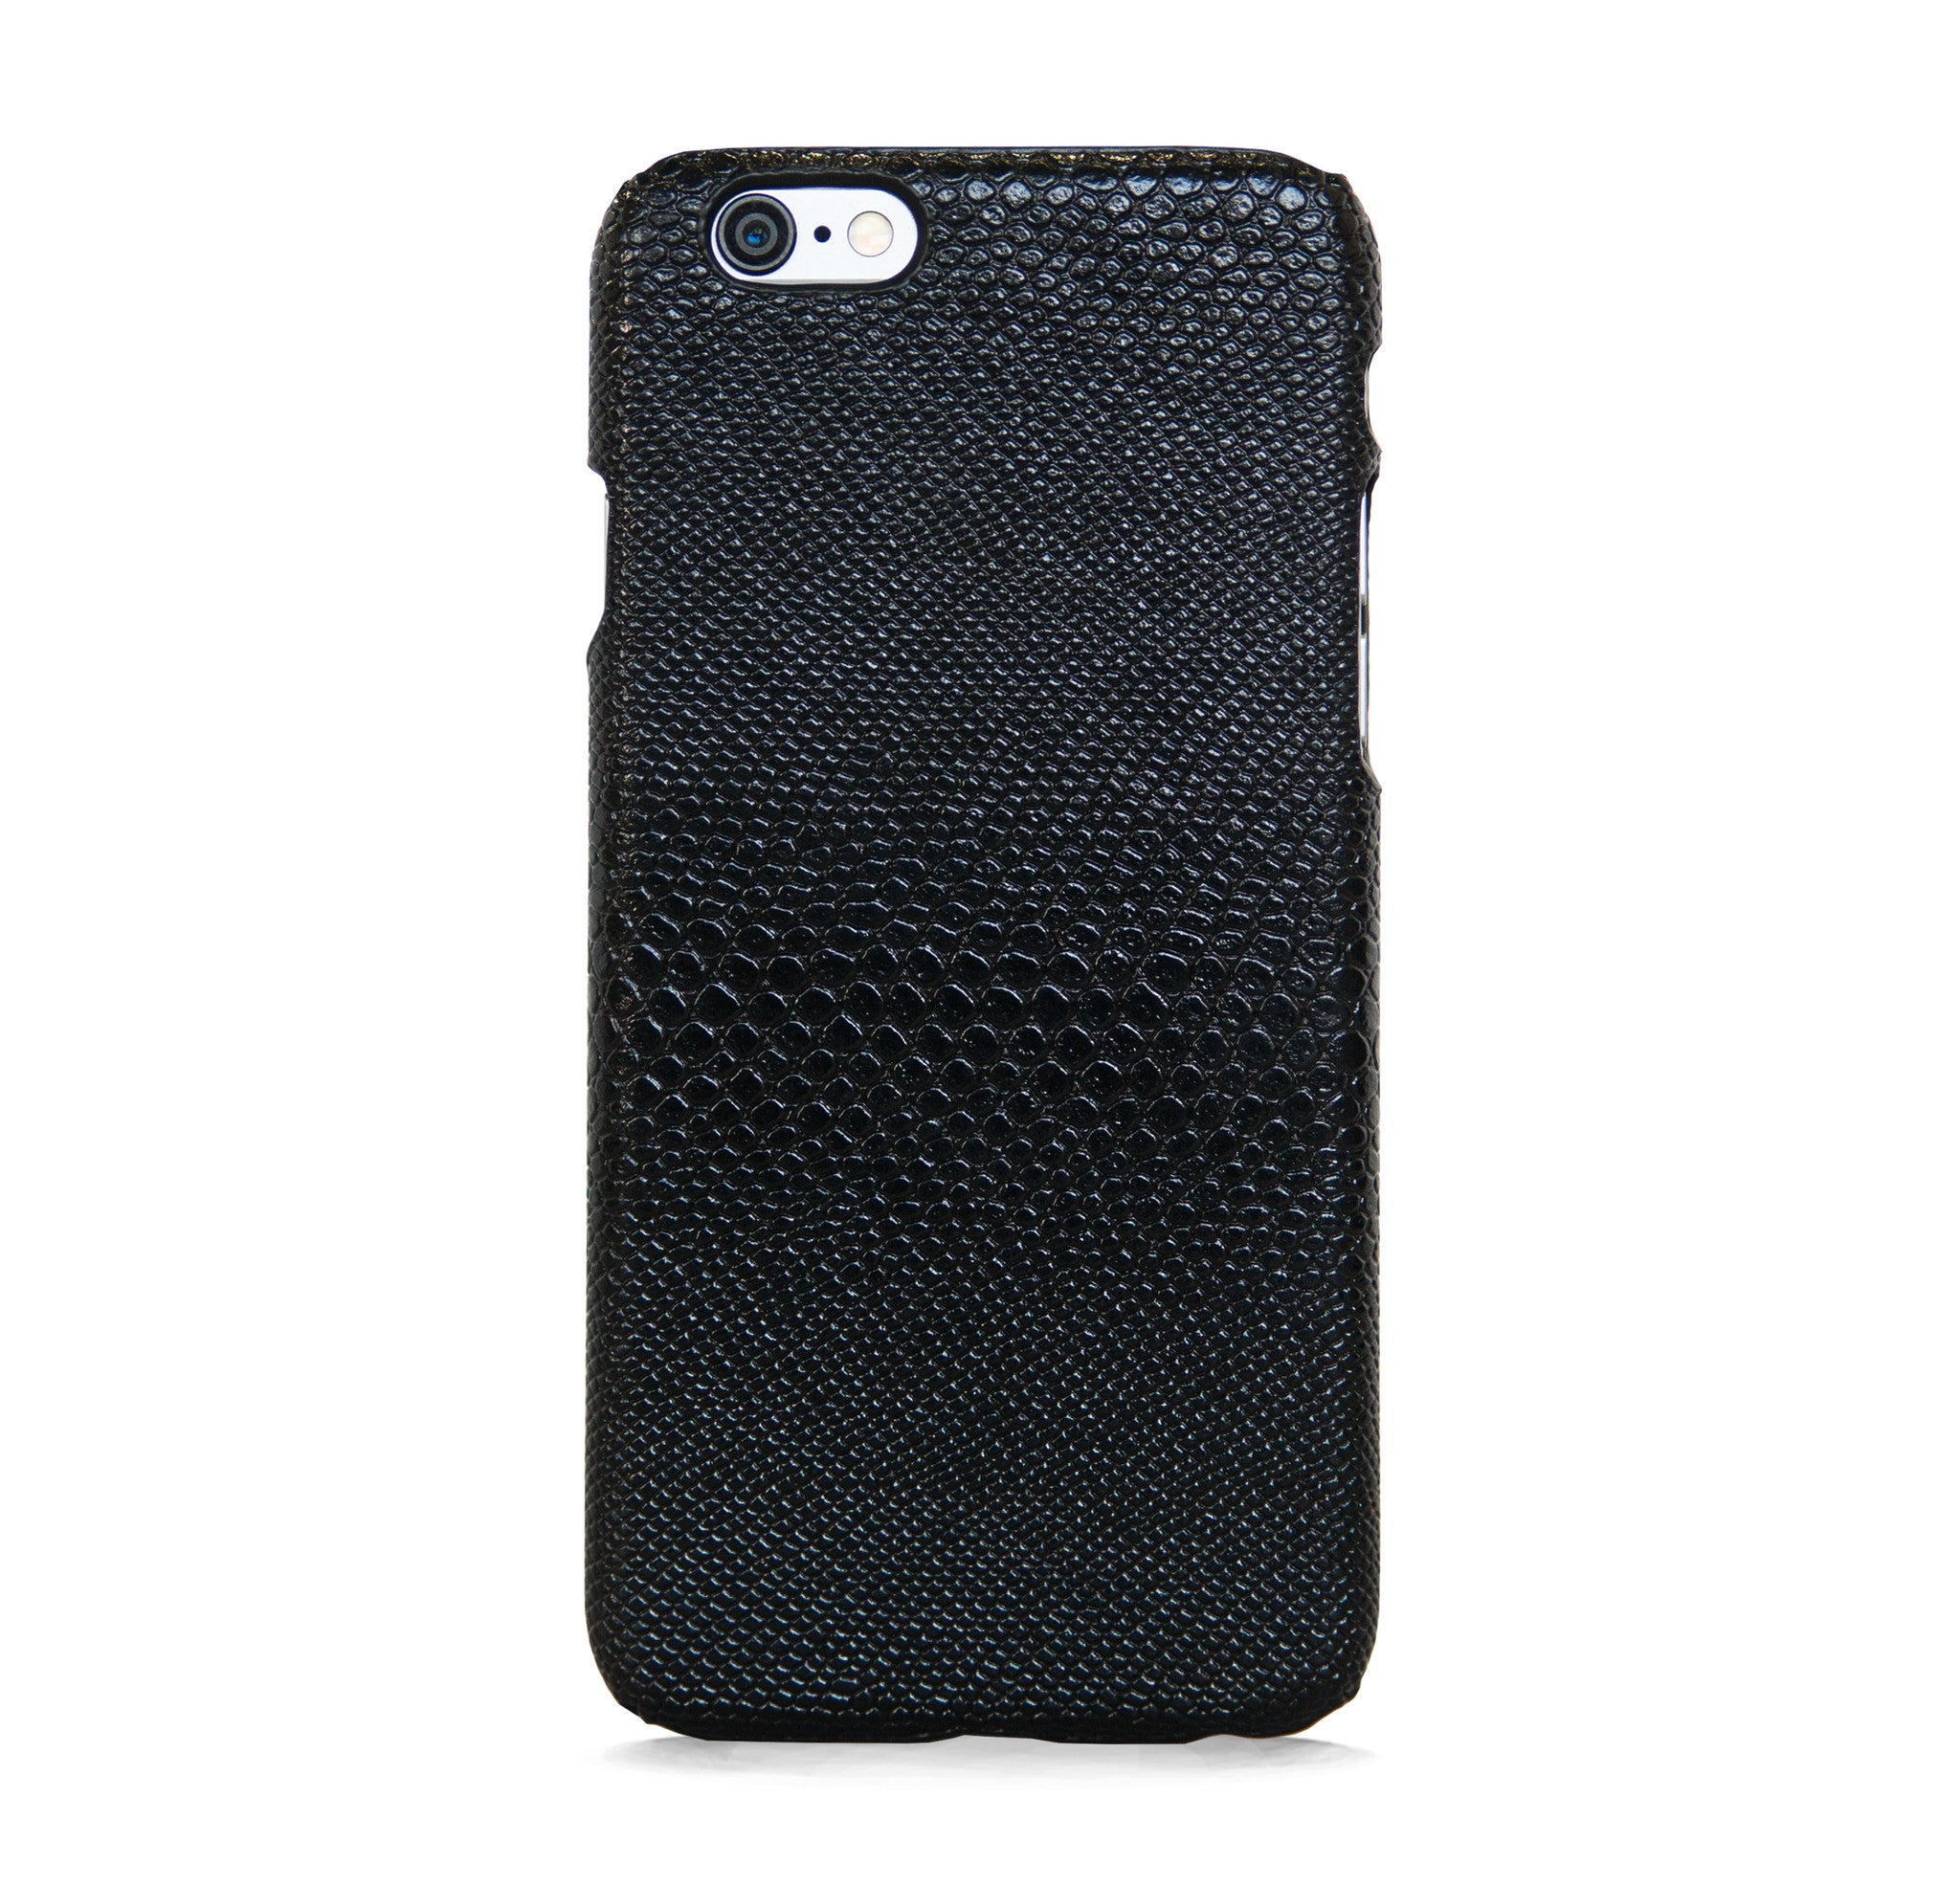 IPHONE 6/6s FAUX LEATHER BLACK CASE